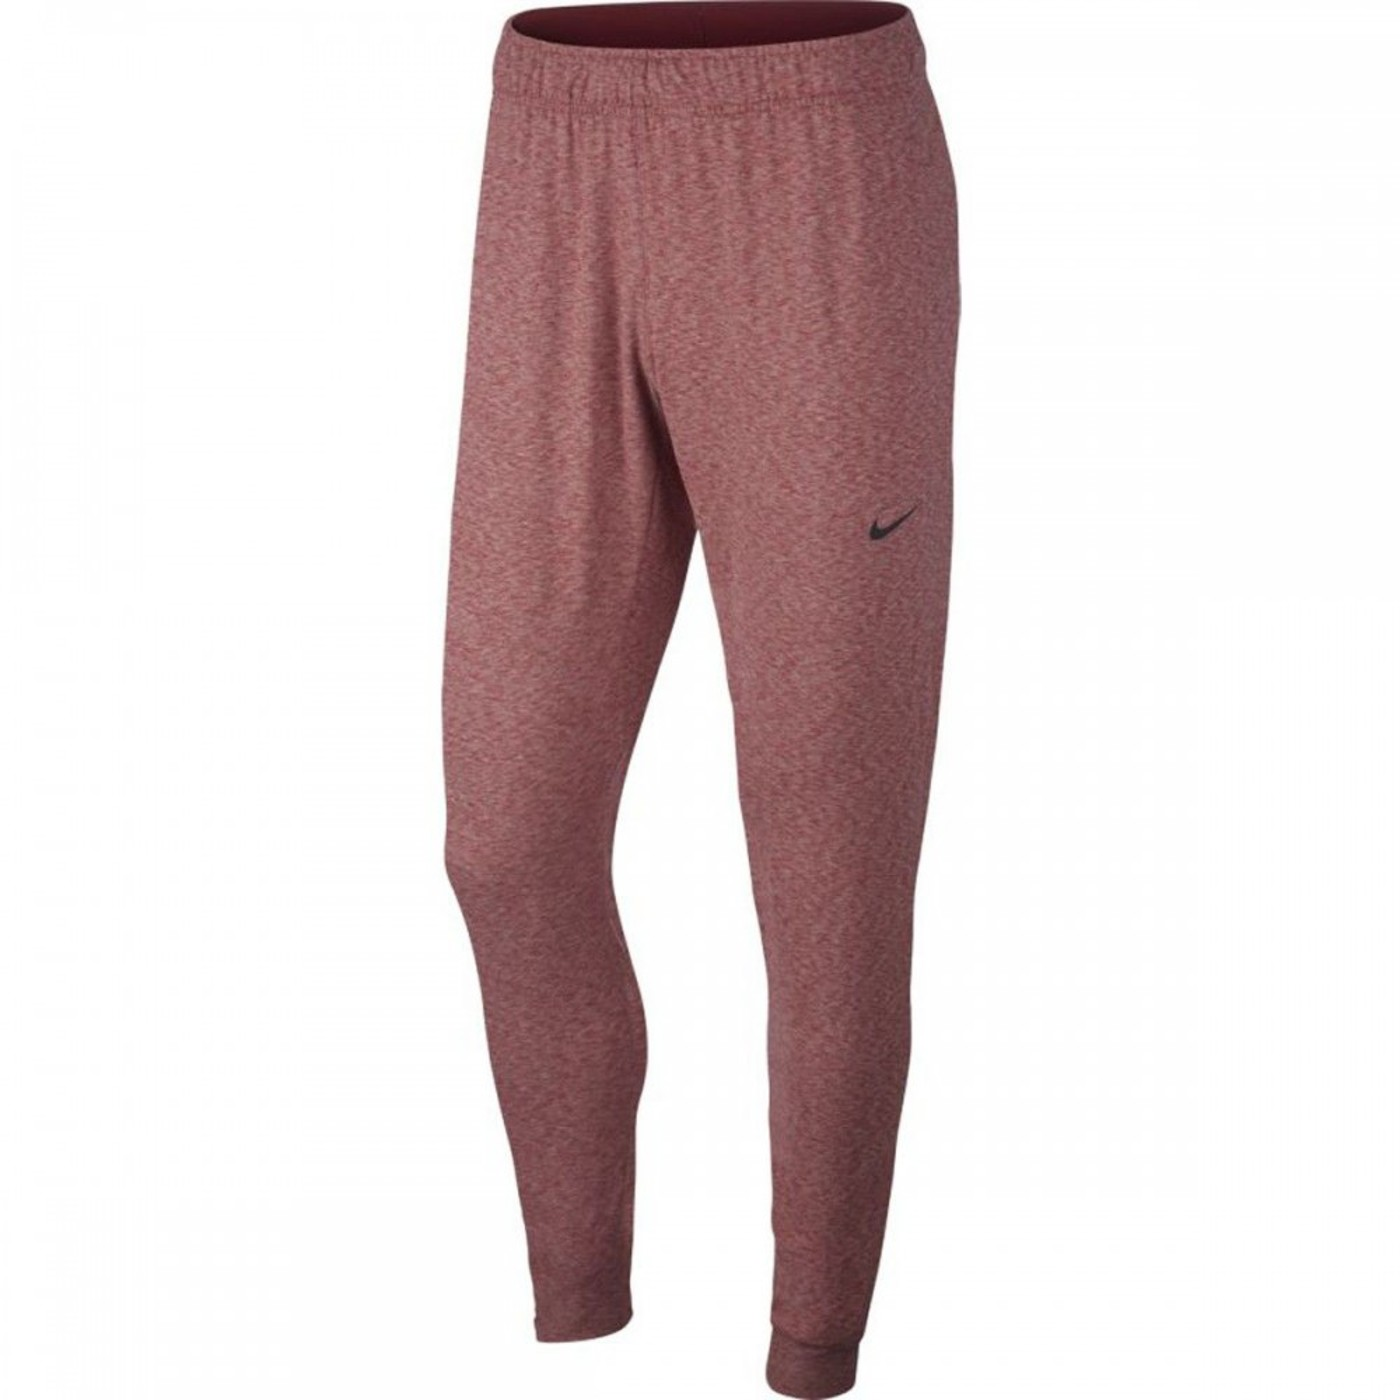 Nike Yoga Dri-FIT Pants - Herren